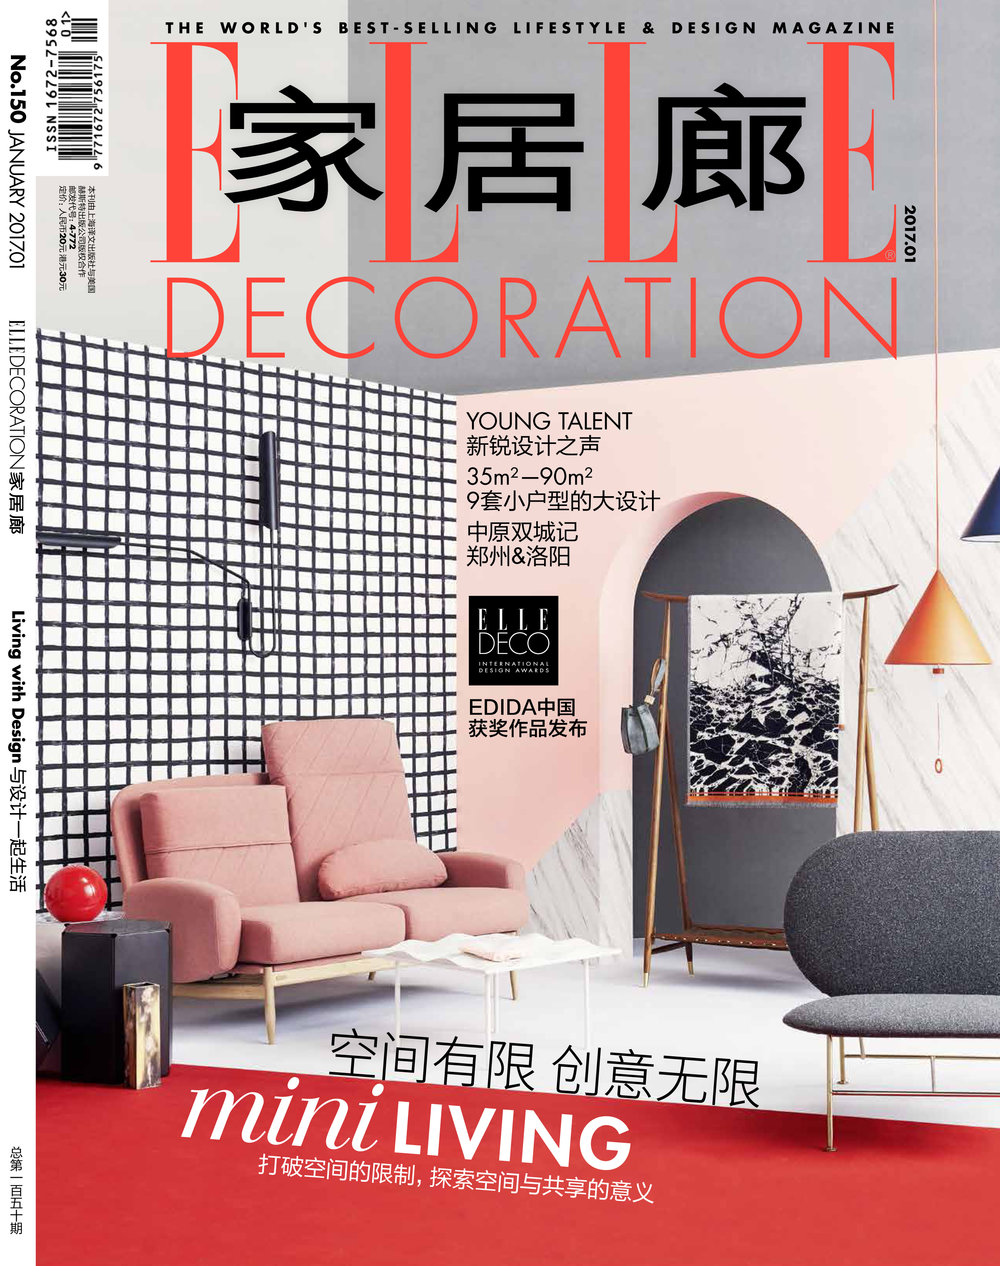 Elle Decor China - Fabulous Small Spaces